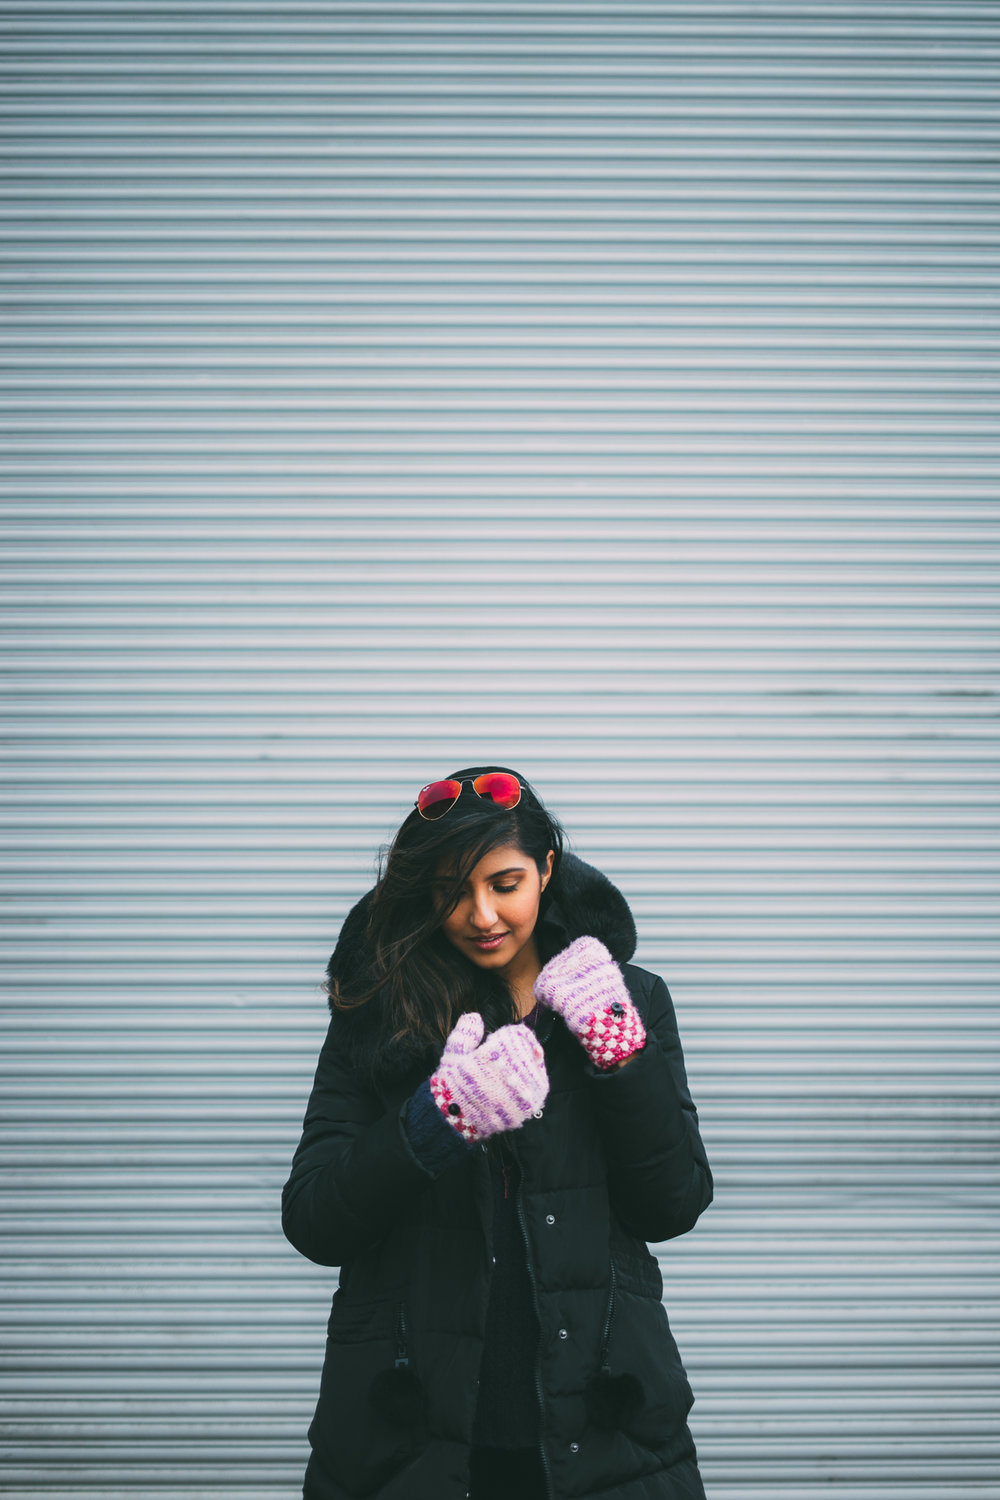 puffer-jacket-velvet-mittens-blogger-outfit-winter-snow-day-style 2